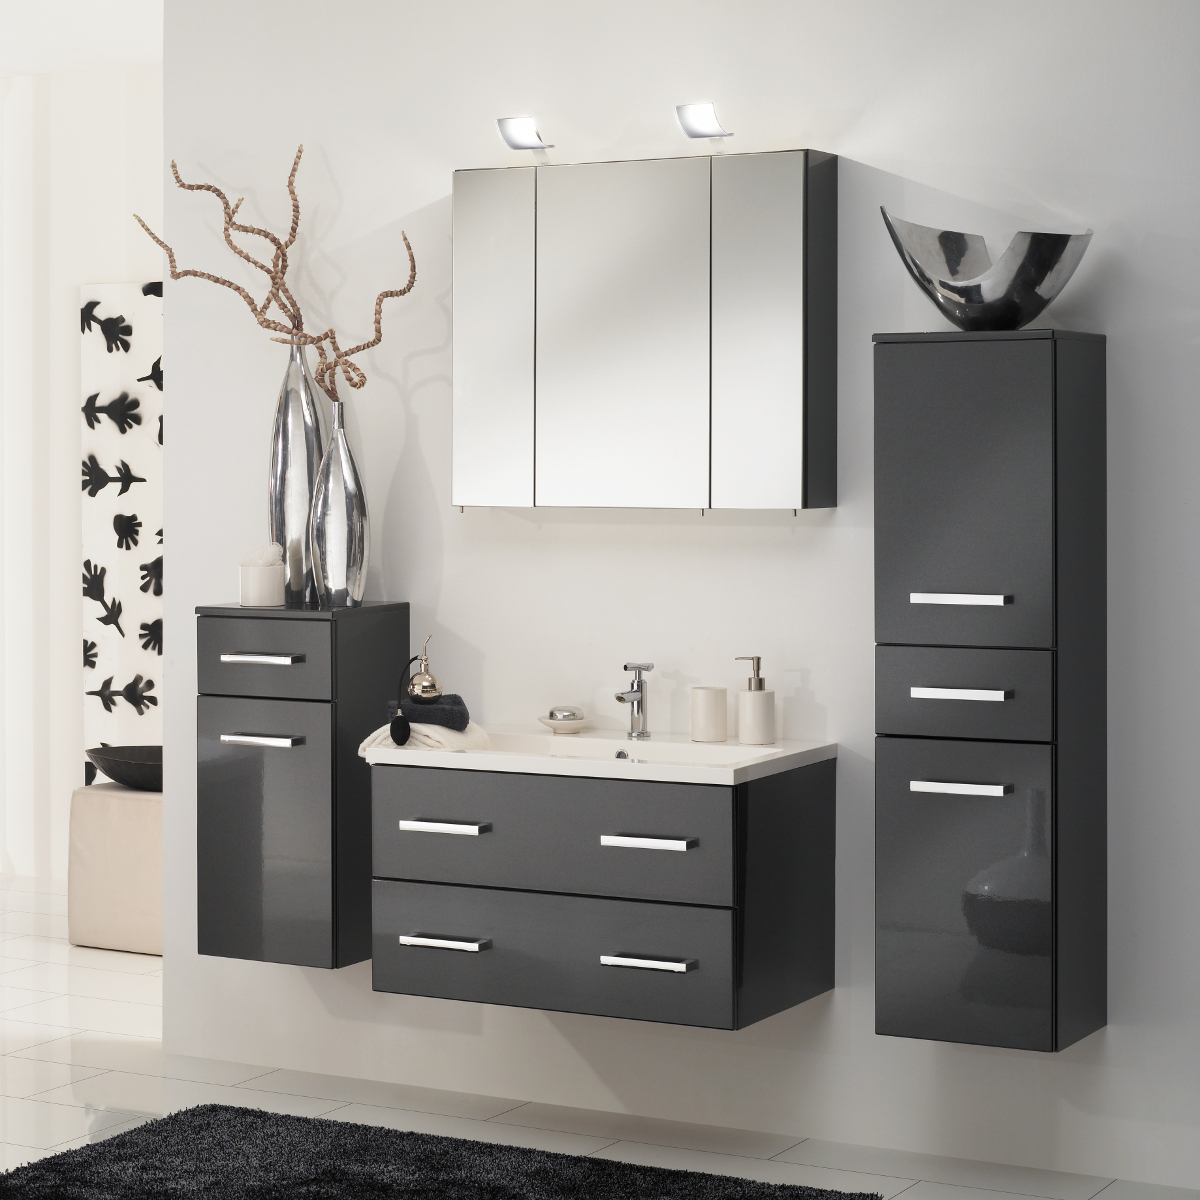 baumarkt g llnitz online shop zoll badm bel rialto. Black Bedroom Furniture Sets. Home Design Ideas